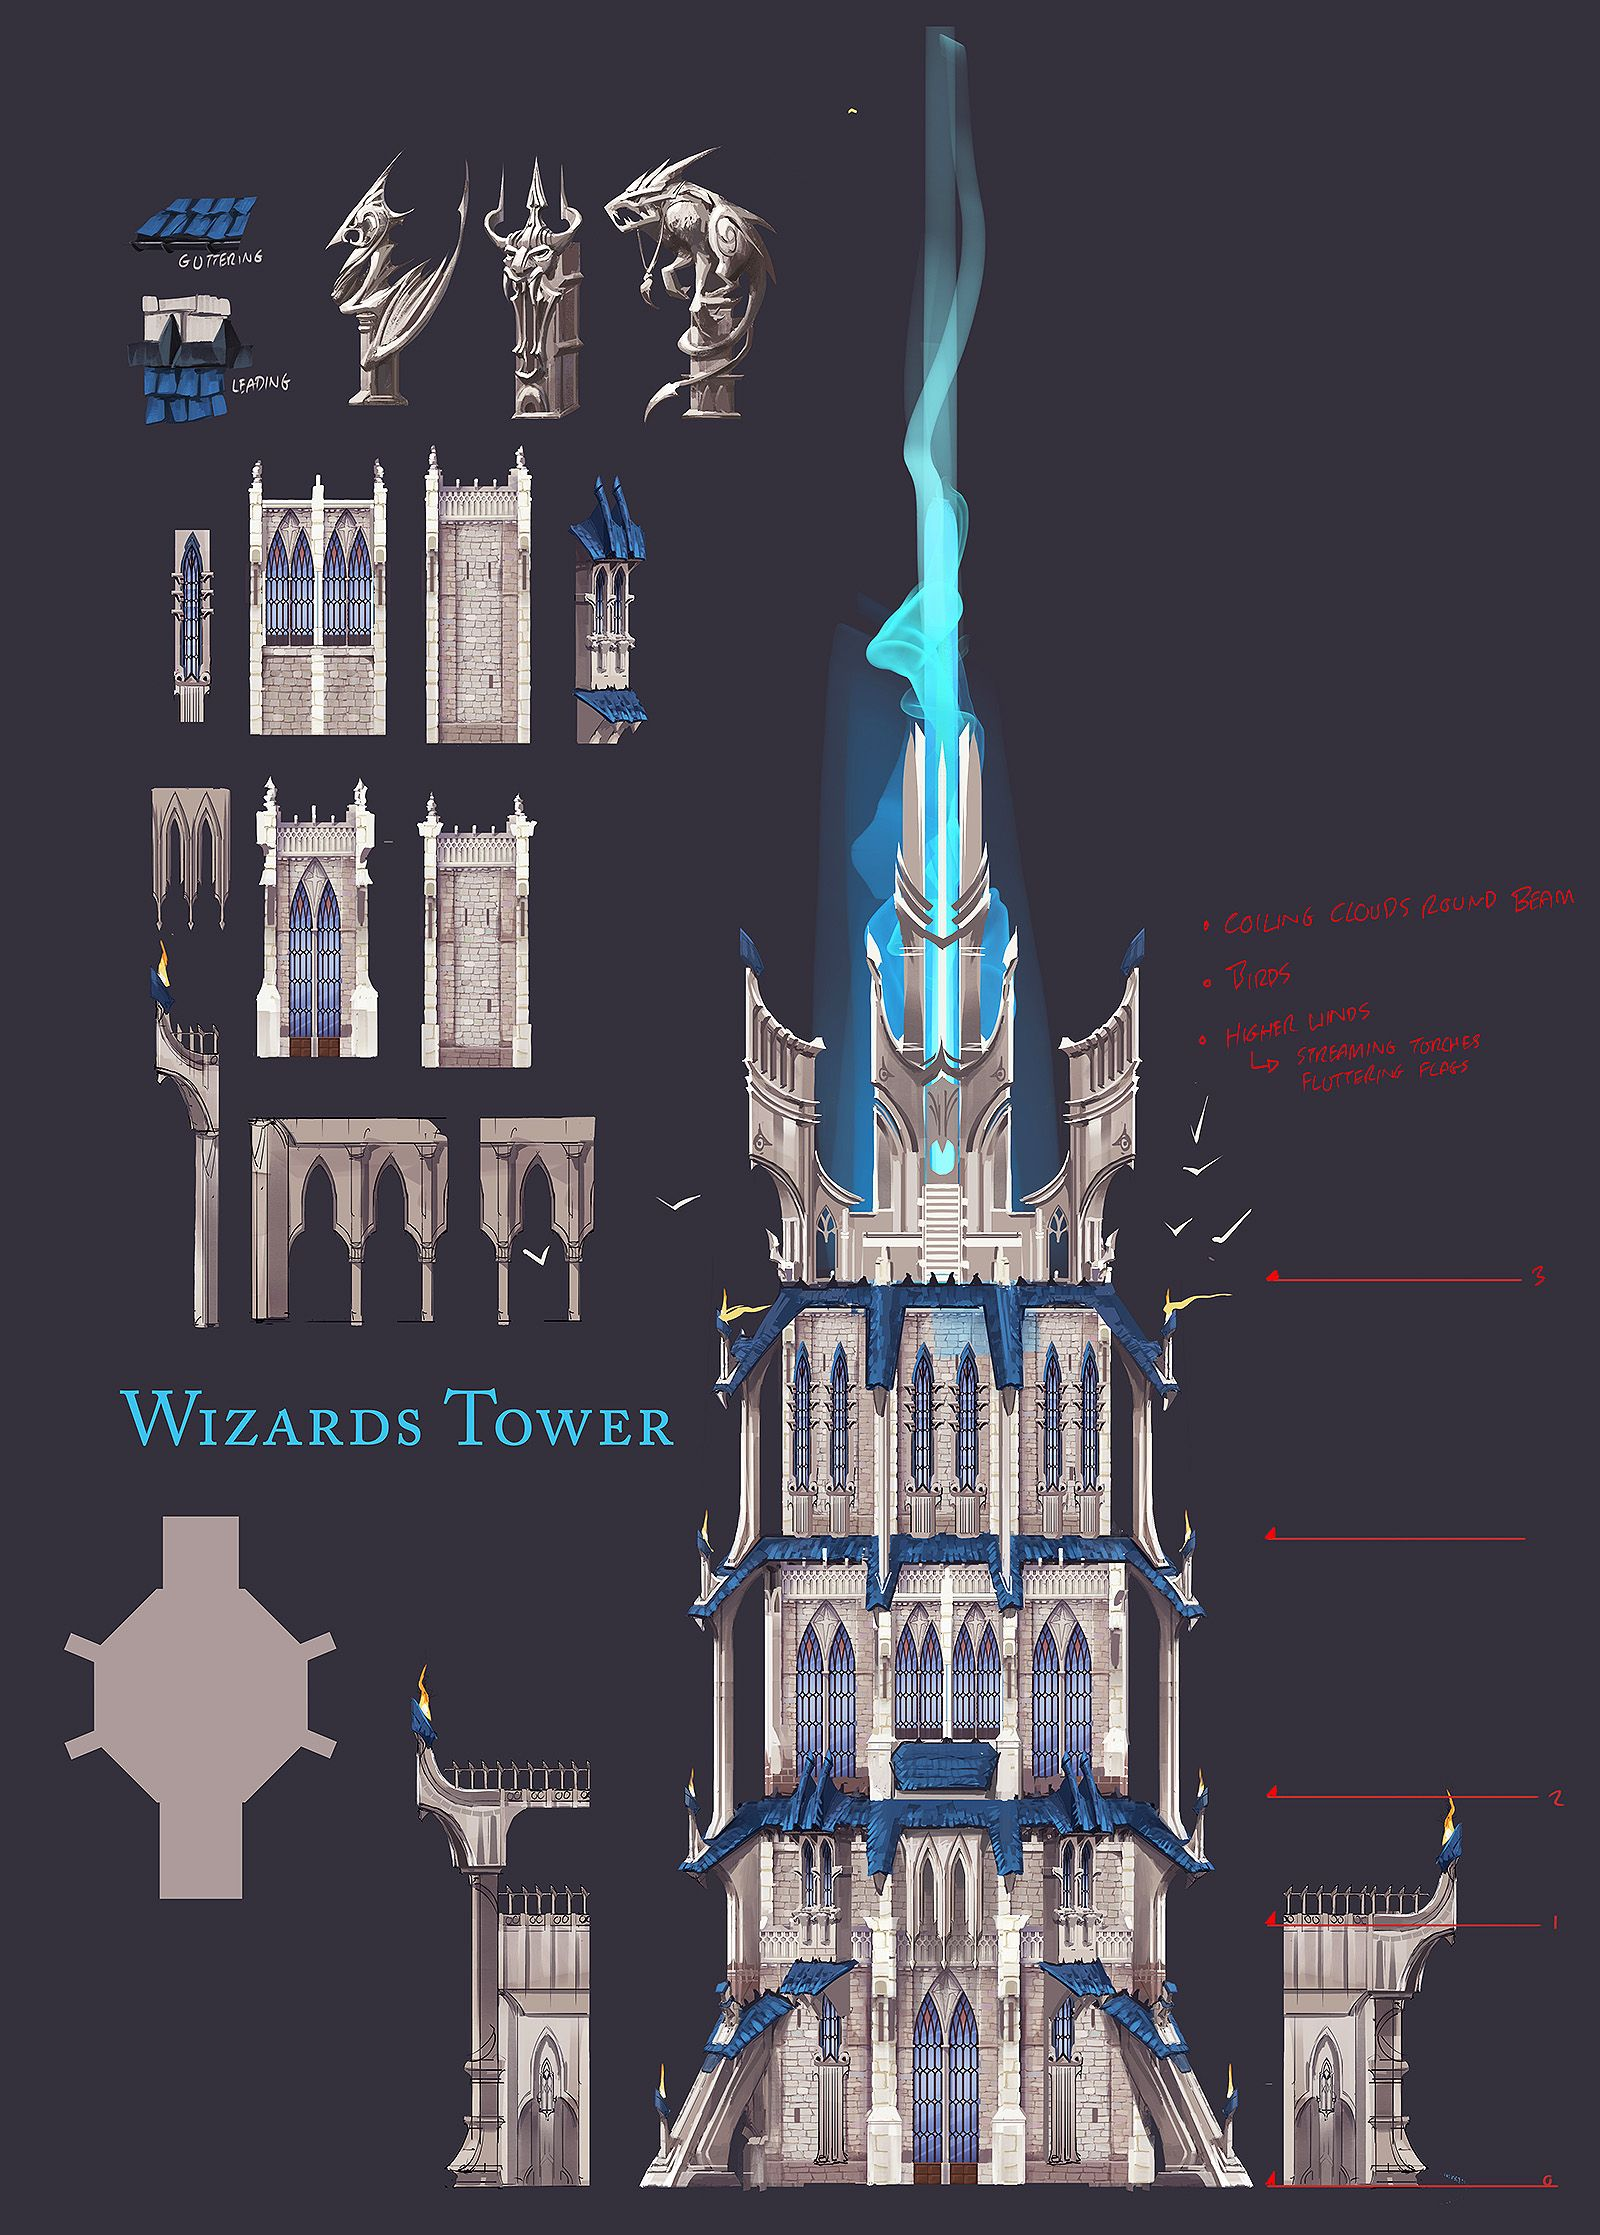 mage tower interior - Поиск в Google